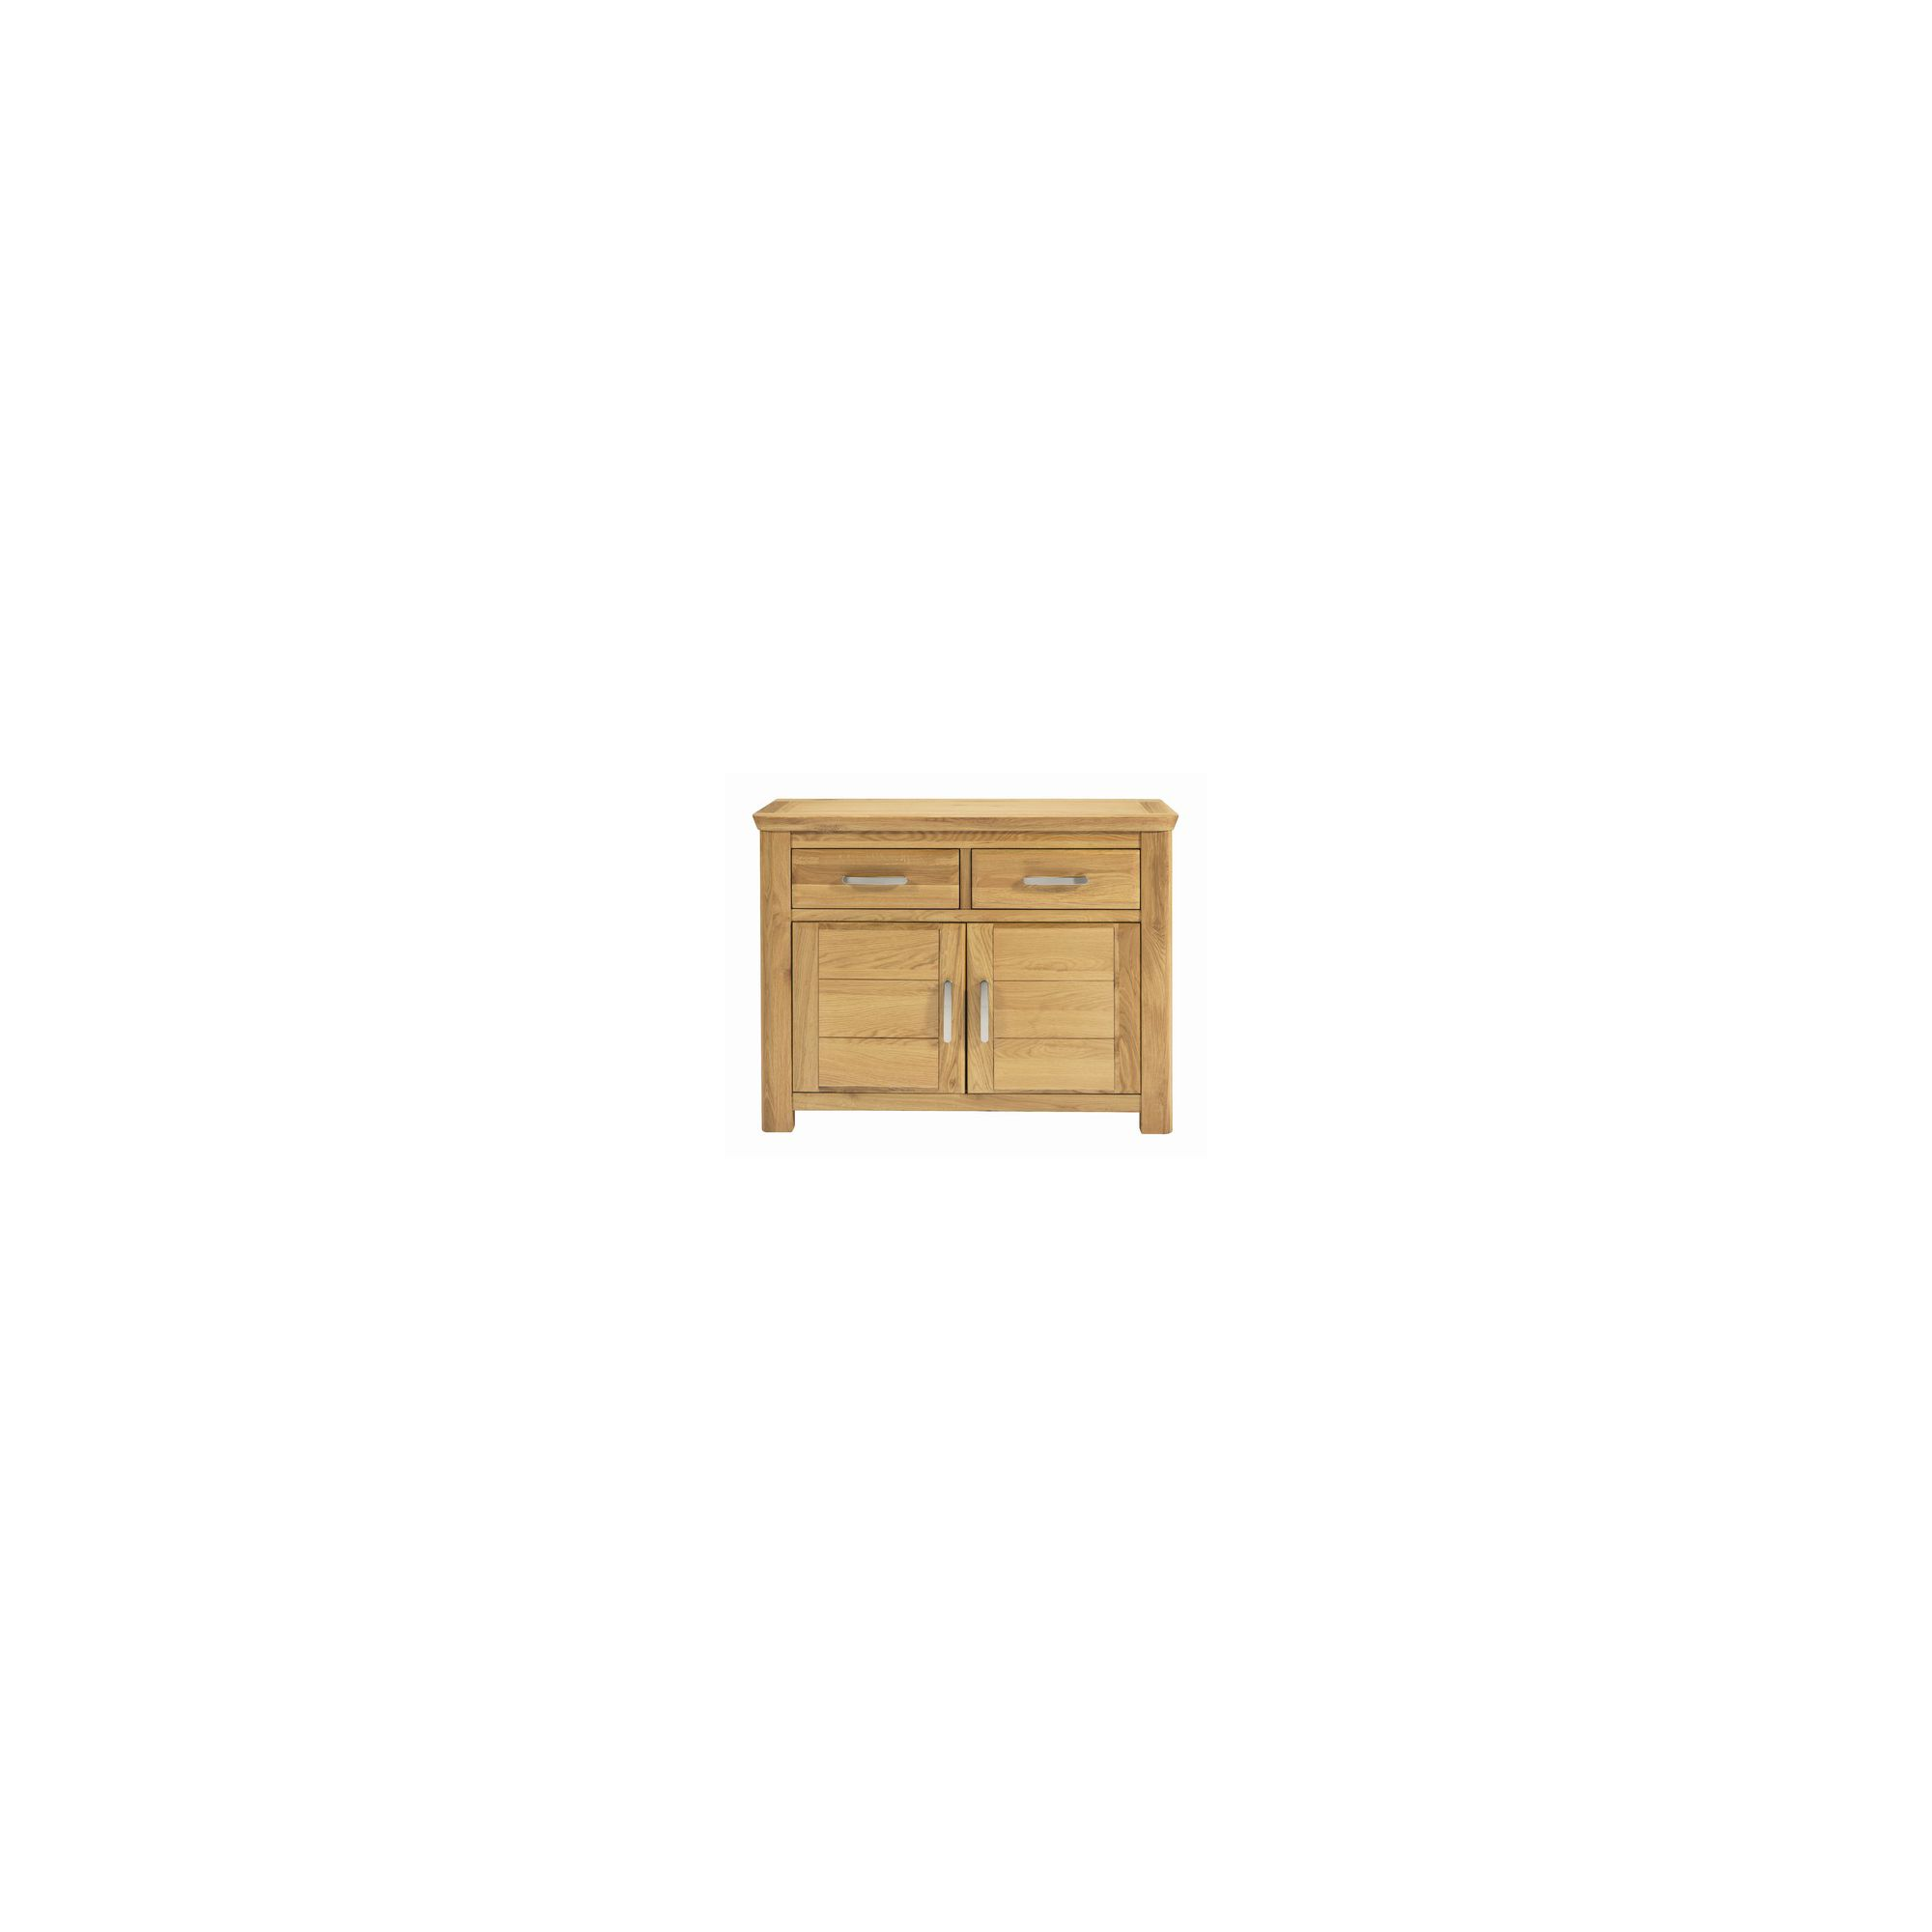 Alterton Furniture Banbury Oak Small Sideboard at Tescos Direct